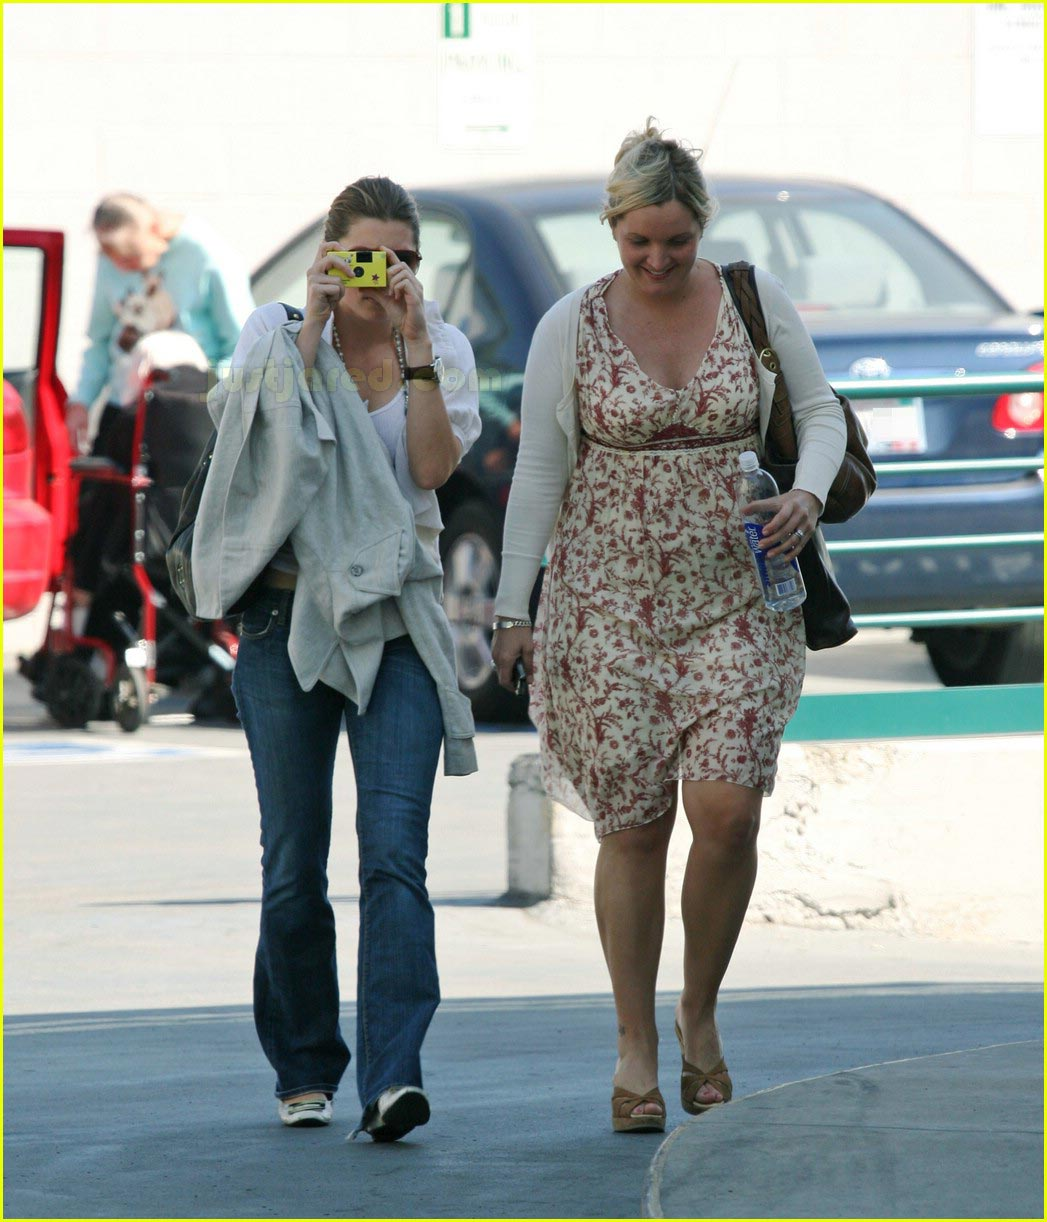 jessica biel taking pictures with camera 17